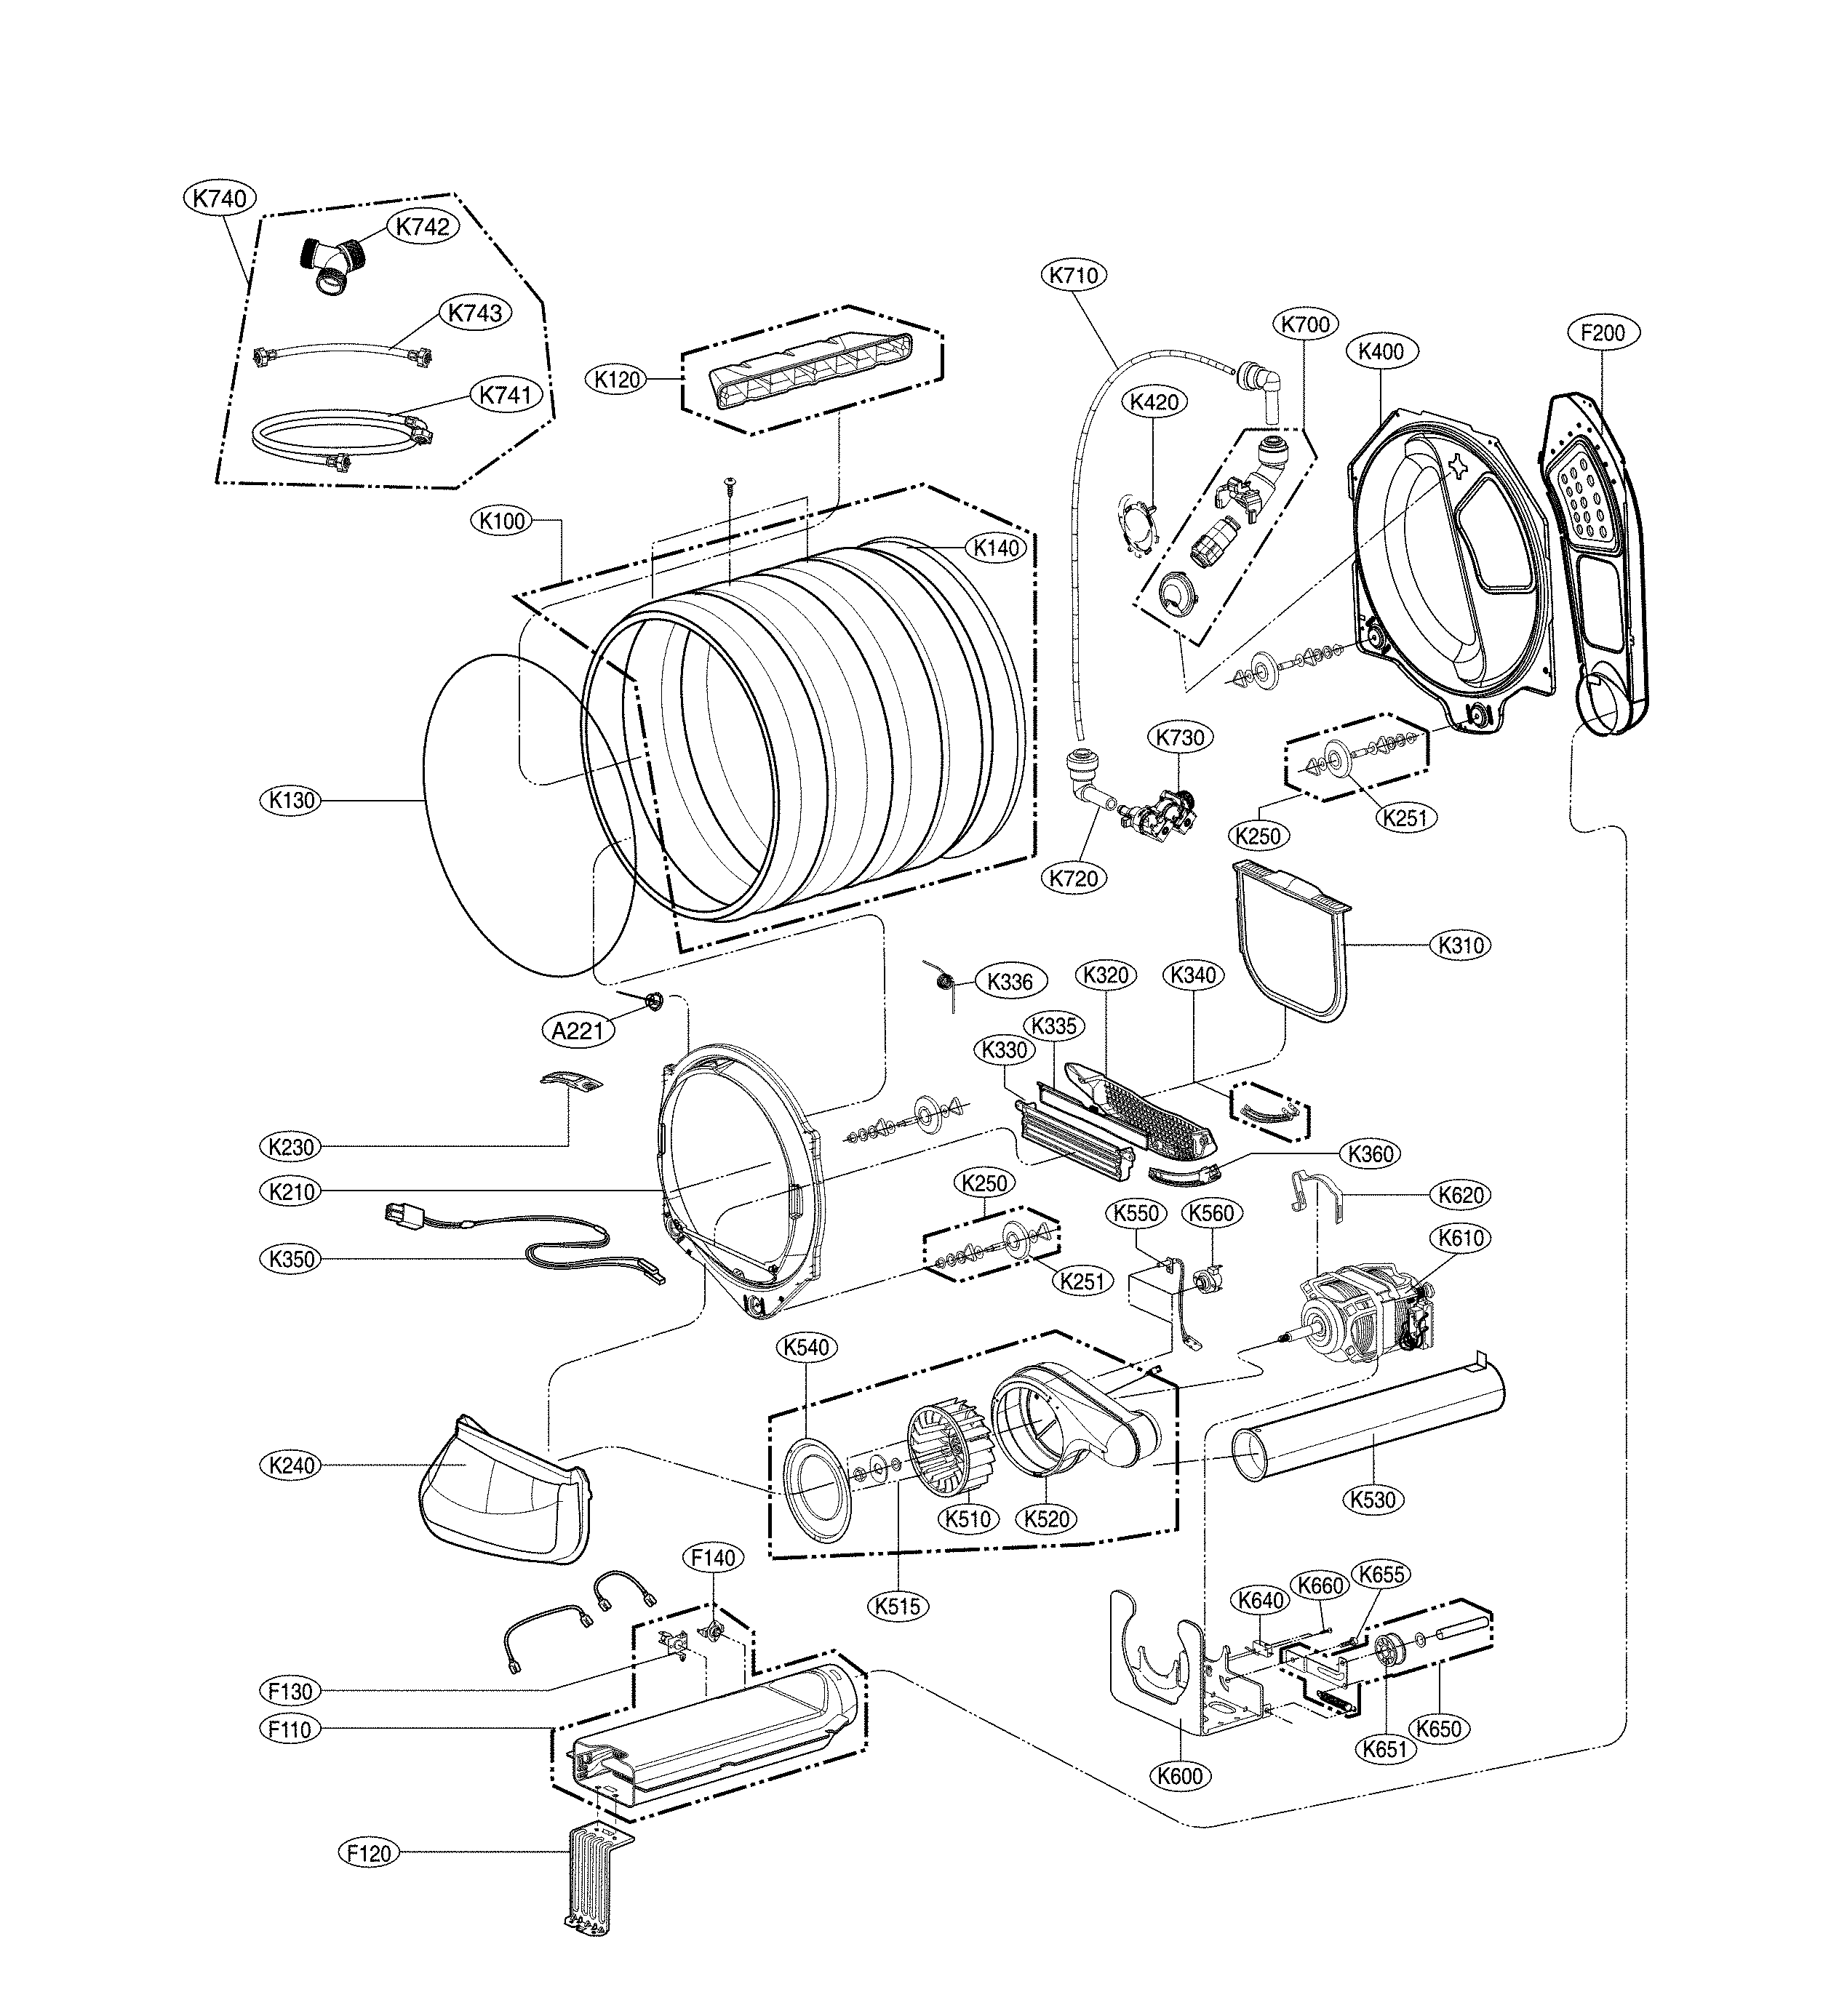 Lg model DLEY1901KE residential dryer genuine parts